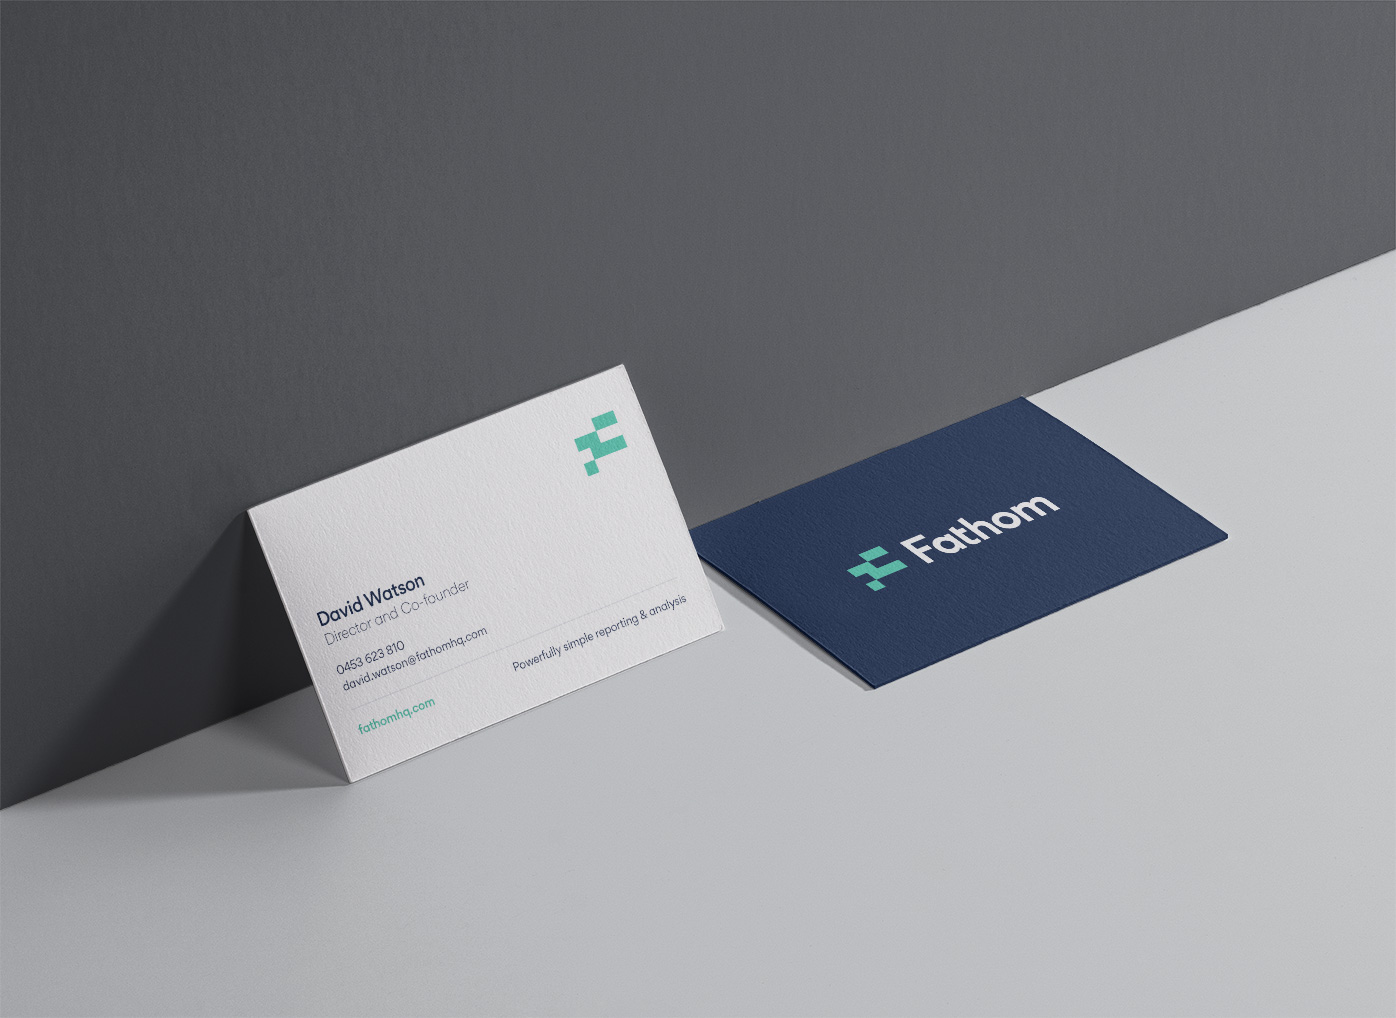 Business-Card-Branding-Mockup-1